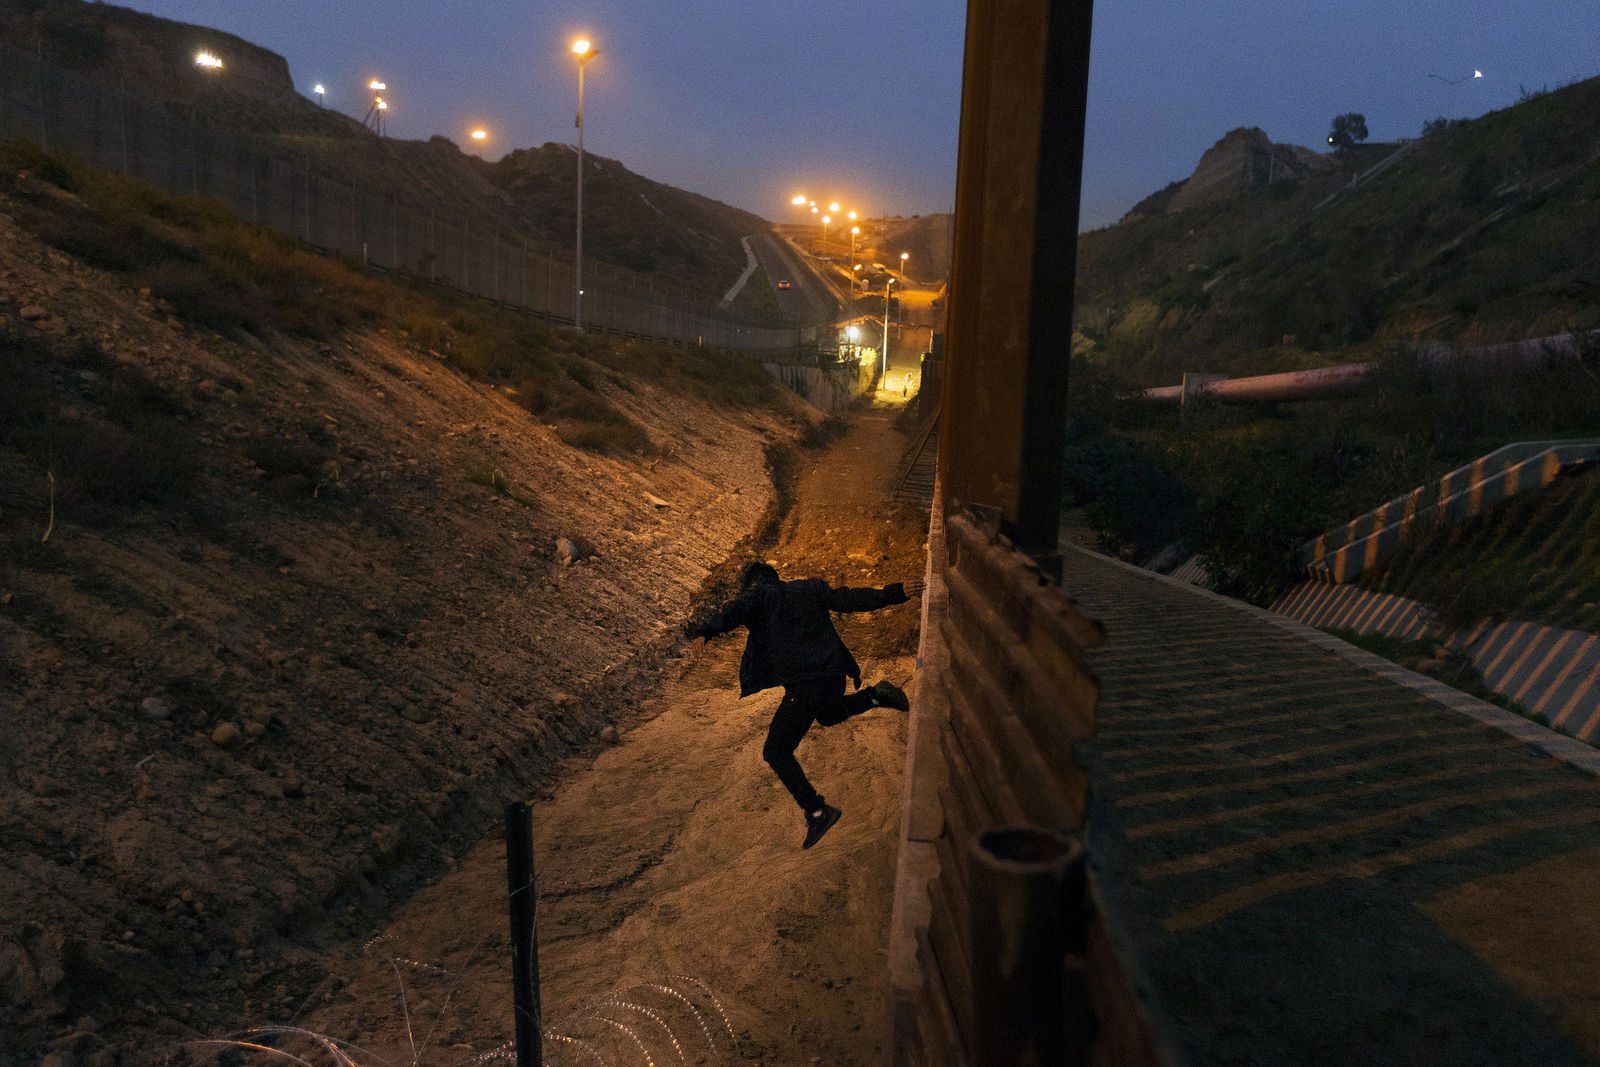 FILE - In this Dec. 21, 2018, file photo, a Honduran youth jumps from the U.S. border fence in Tijuana, Mexico.   California's attorney general filed a lawsuit Monday, Feb. 18, 2019, against President Donald Trump's emergency declaration to fund a wall on the U.S.-Mexico border.{ } (AP Photo/Daniel Ochoa de Olza, File)